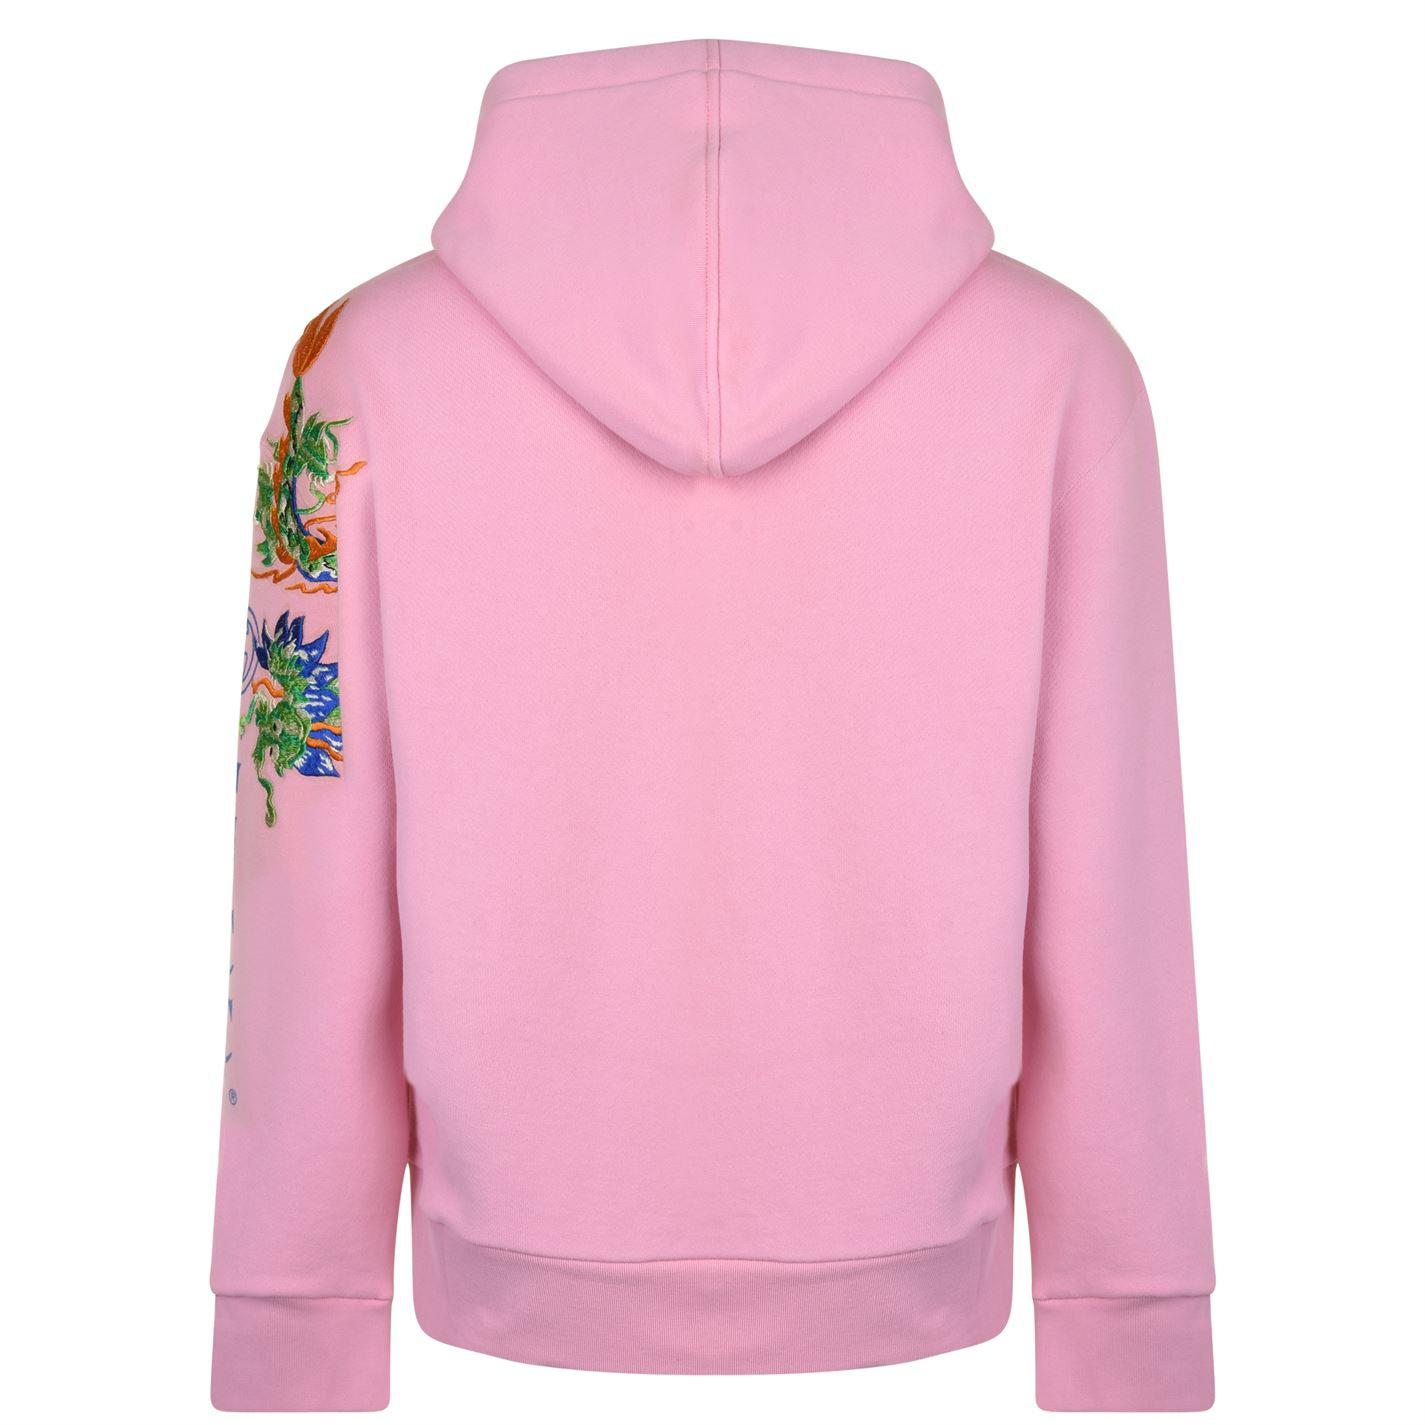 cb0eb3acaa9 Gucci - Pink Fake Logo Embroidered Hooded Sweatshirt for Men - Lyst. View  fullscreen